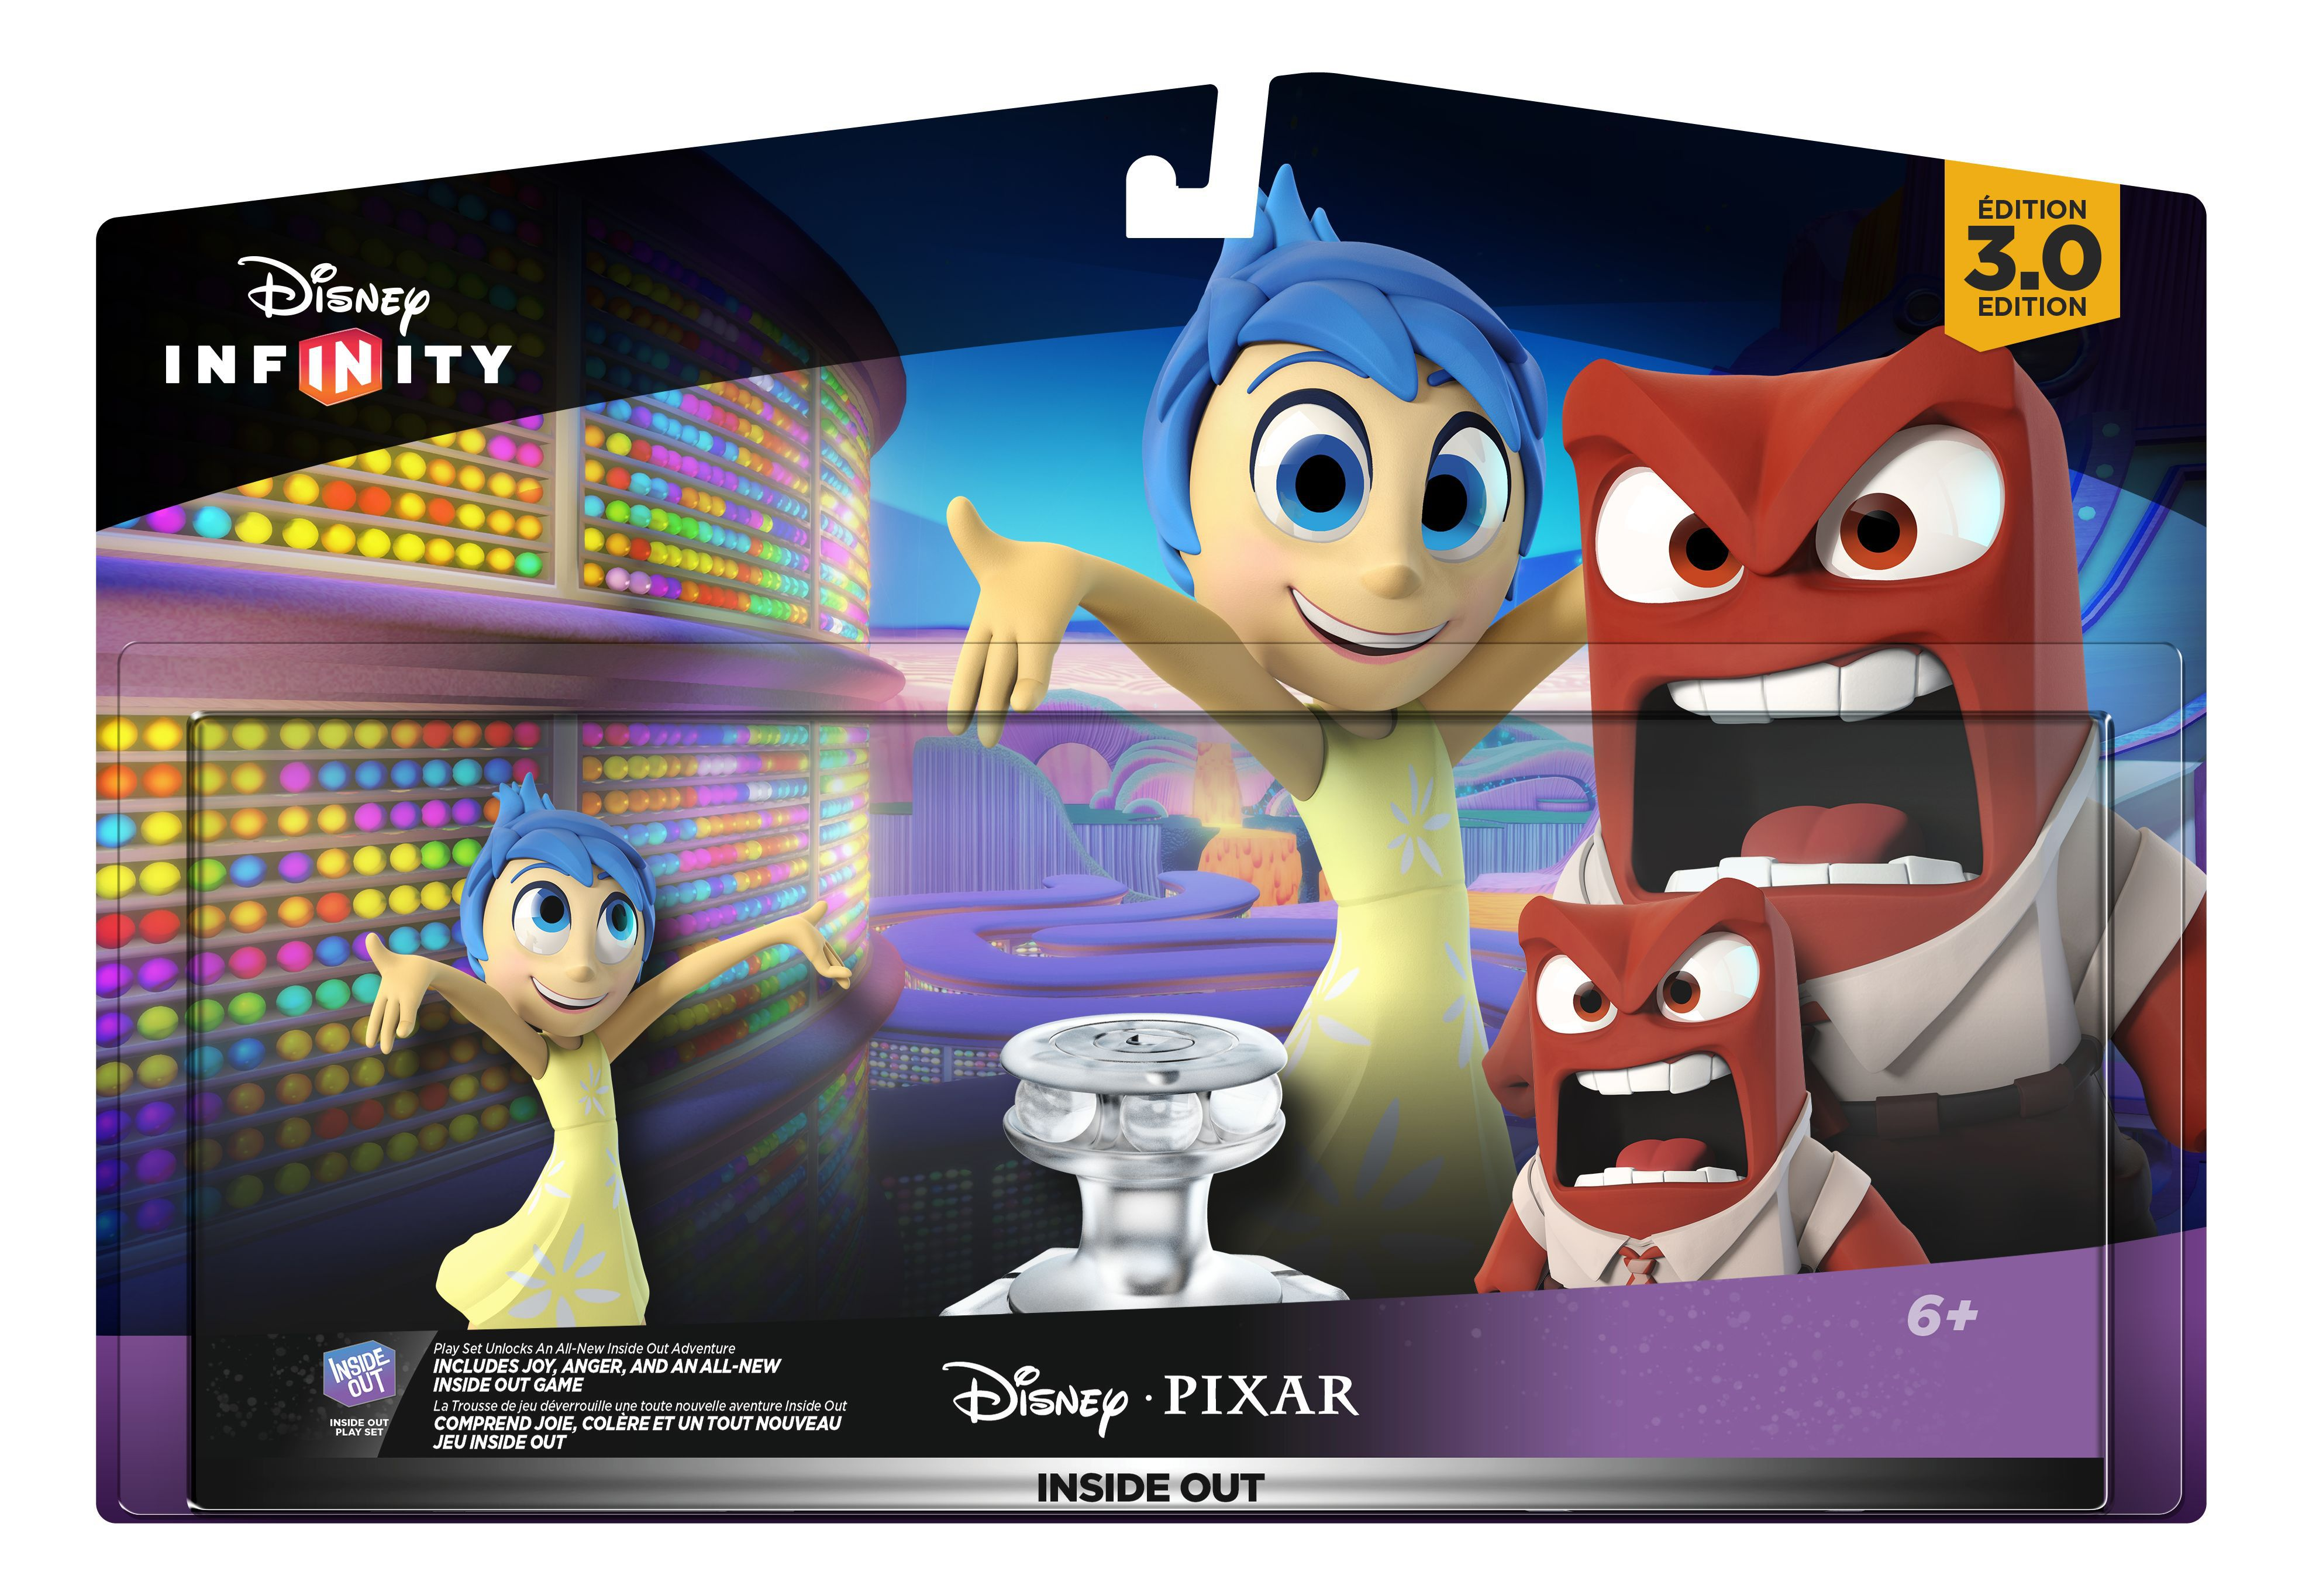 Disney Infinity 3.0 Review Part 3: Inside Out.